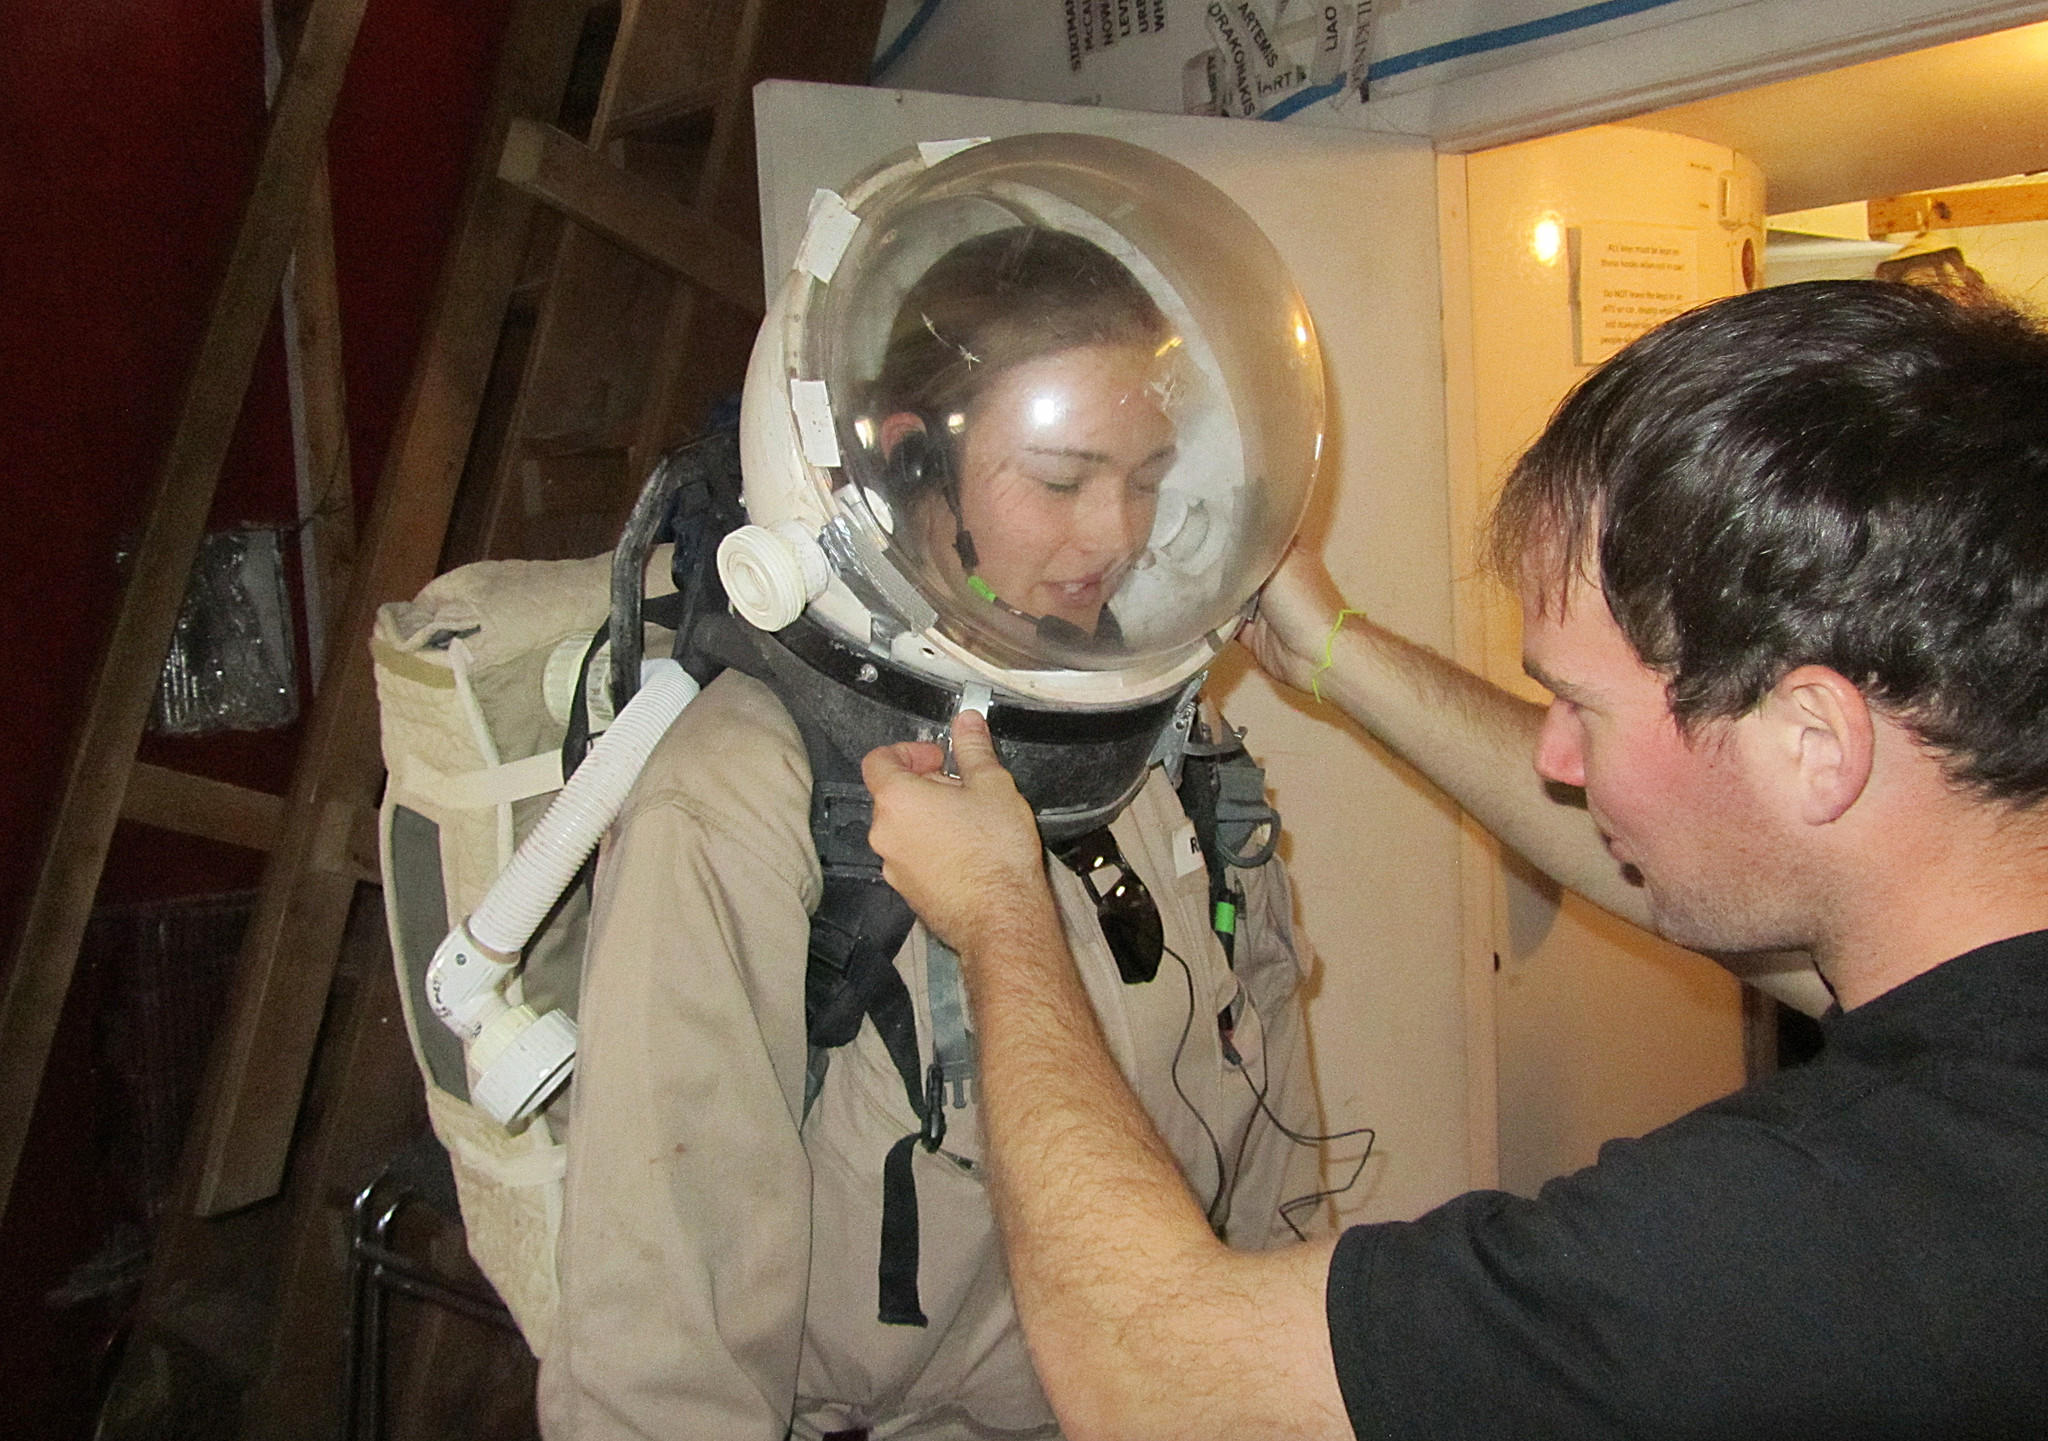 Virginia Beach native Lt. Heidi Beemer training at the Mars Desert Research Station in Utah in 2010.